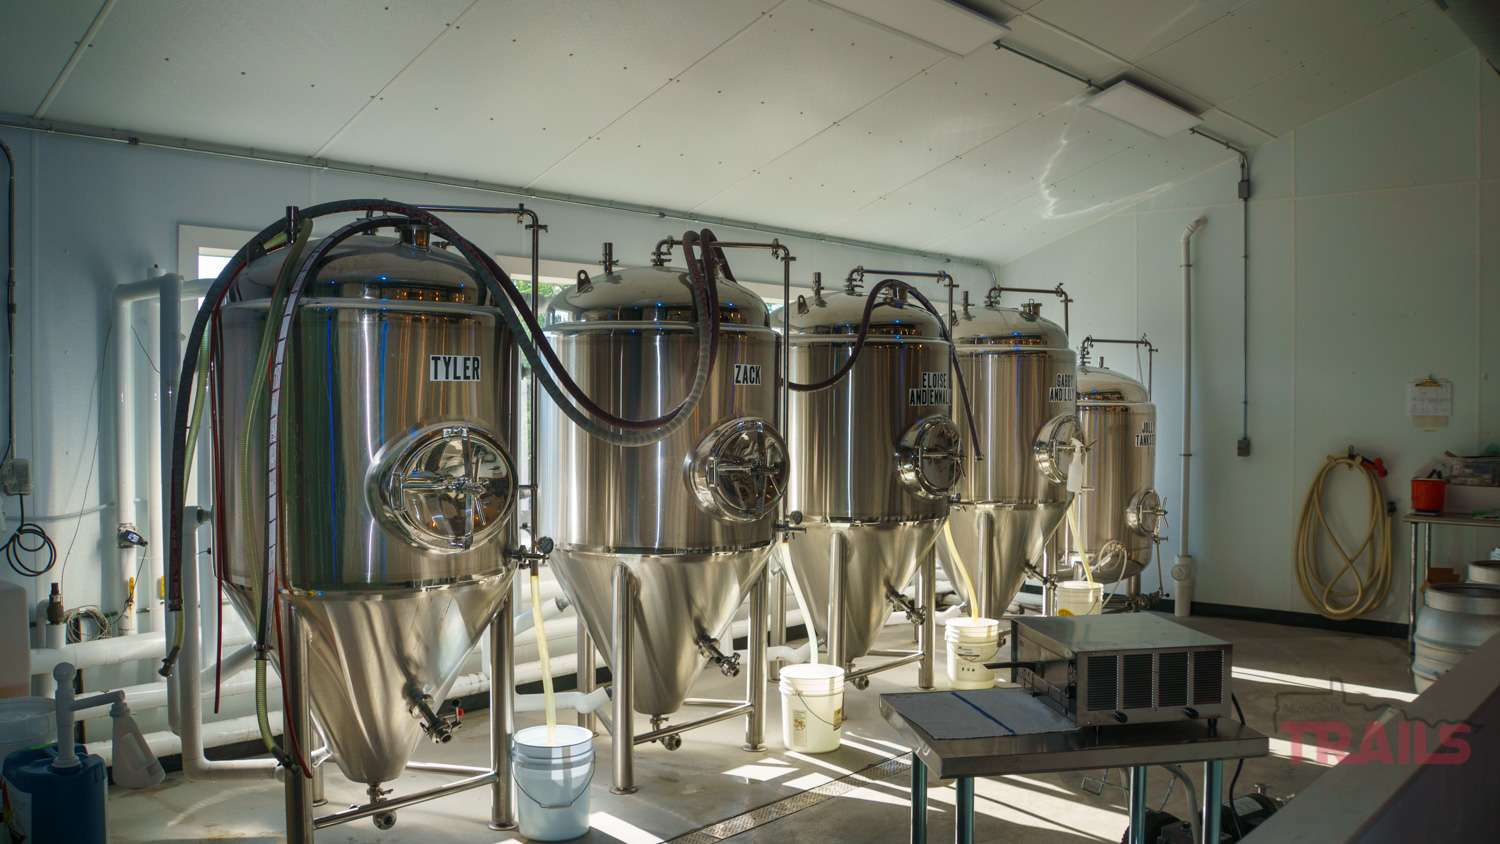 Shiny stainless steel tanks in a brewery